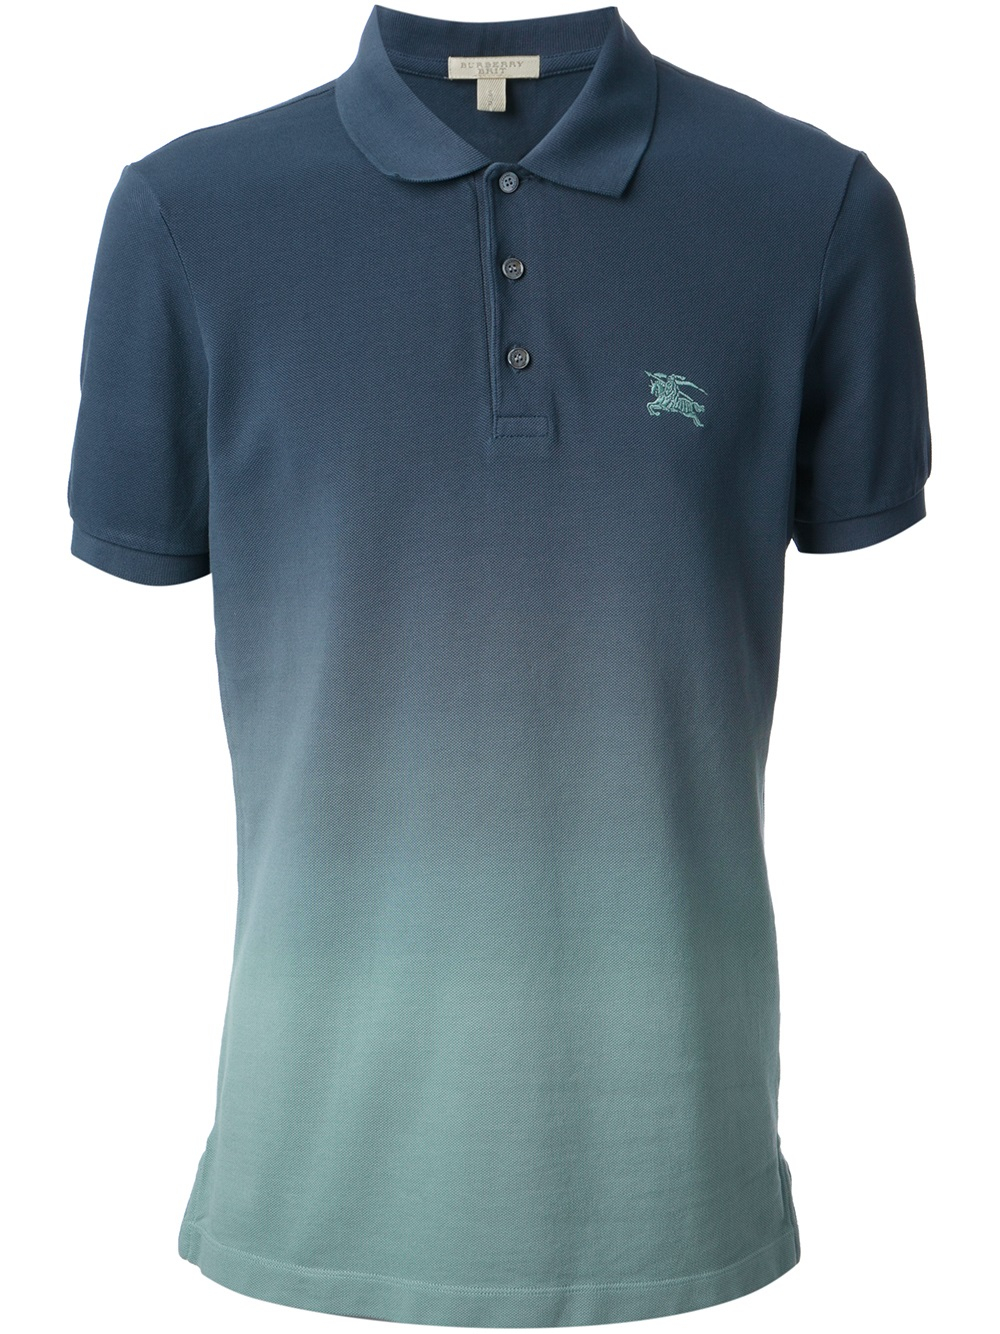 Shirts polo shirts armani t shirts armani blue polo shirt for Polo shirts with logos